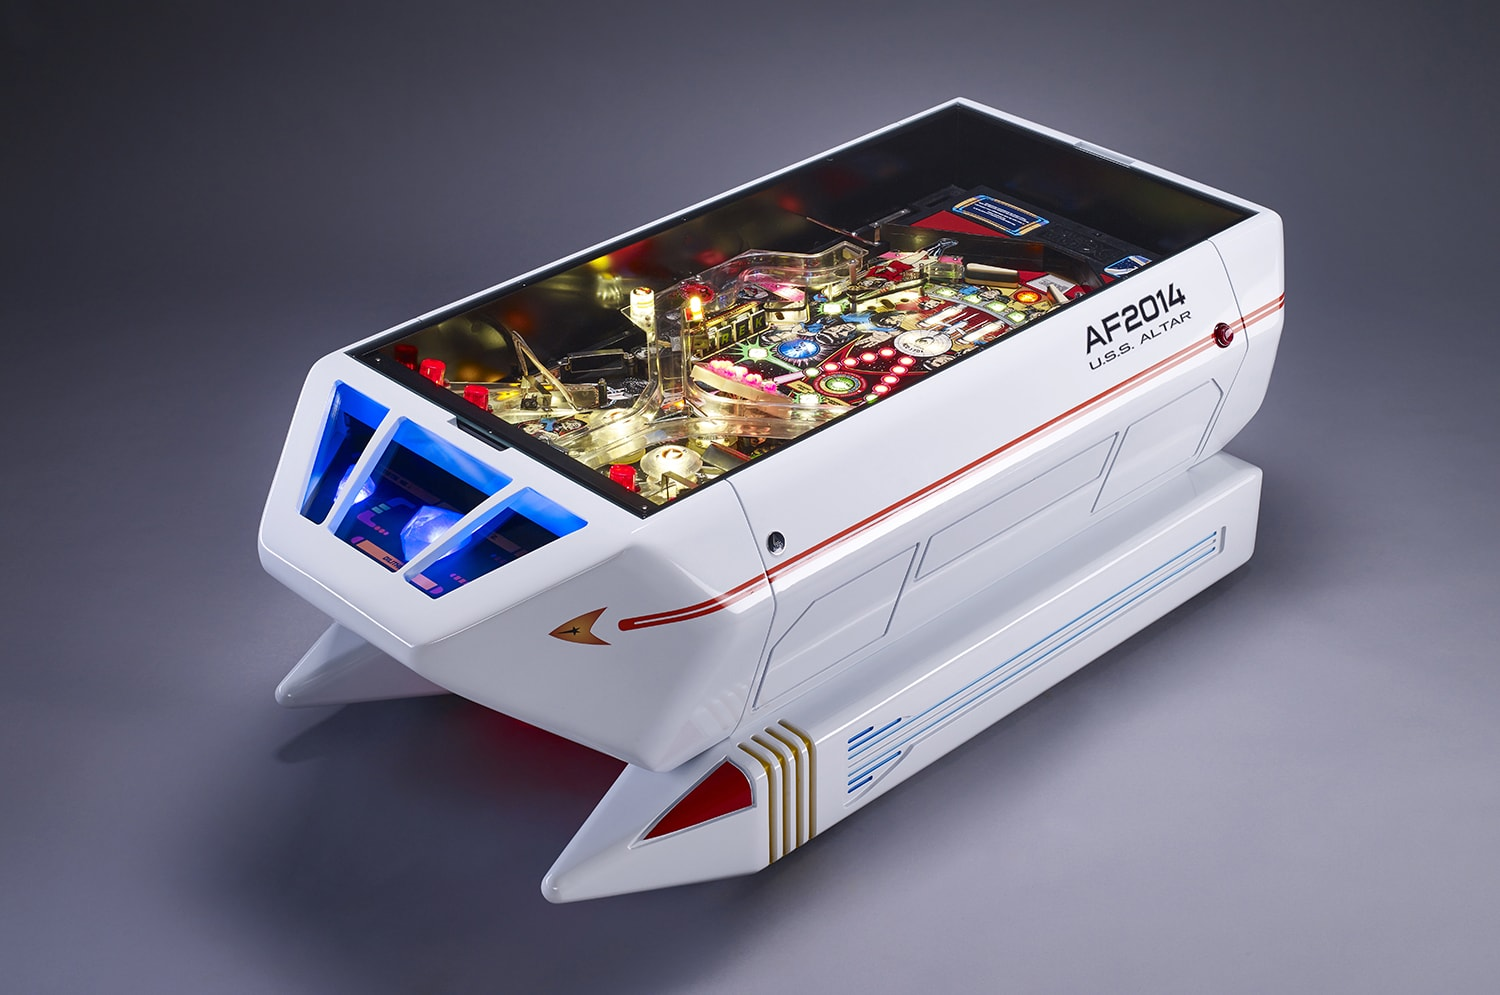 """The Shuttle"" coffee table was conceived by András Lacfi and inspired by 1991 Star Trek pinball machine."